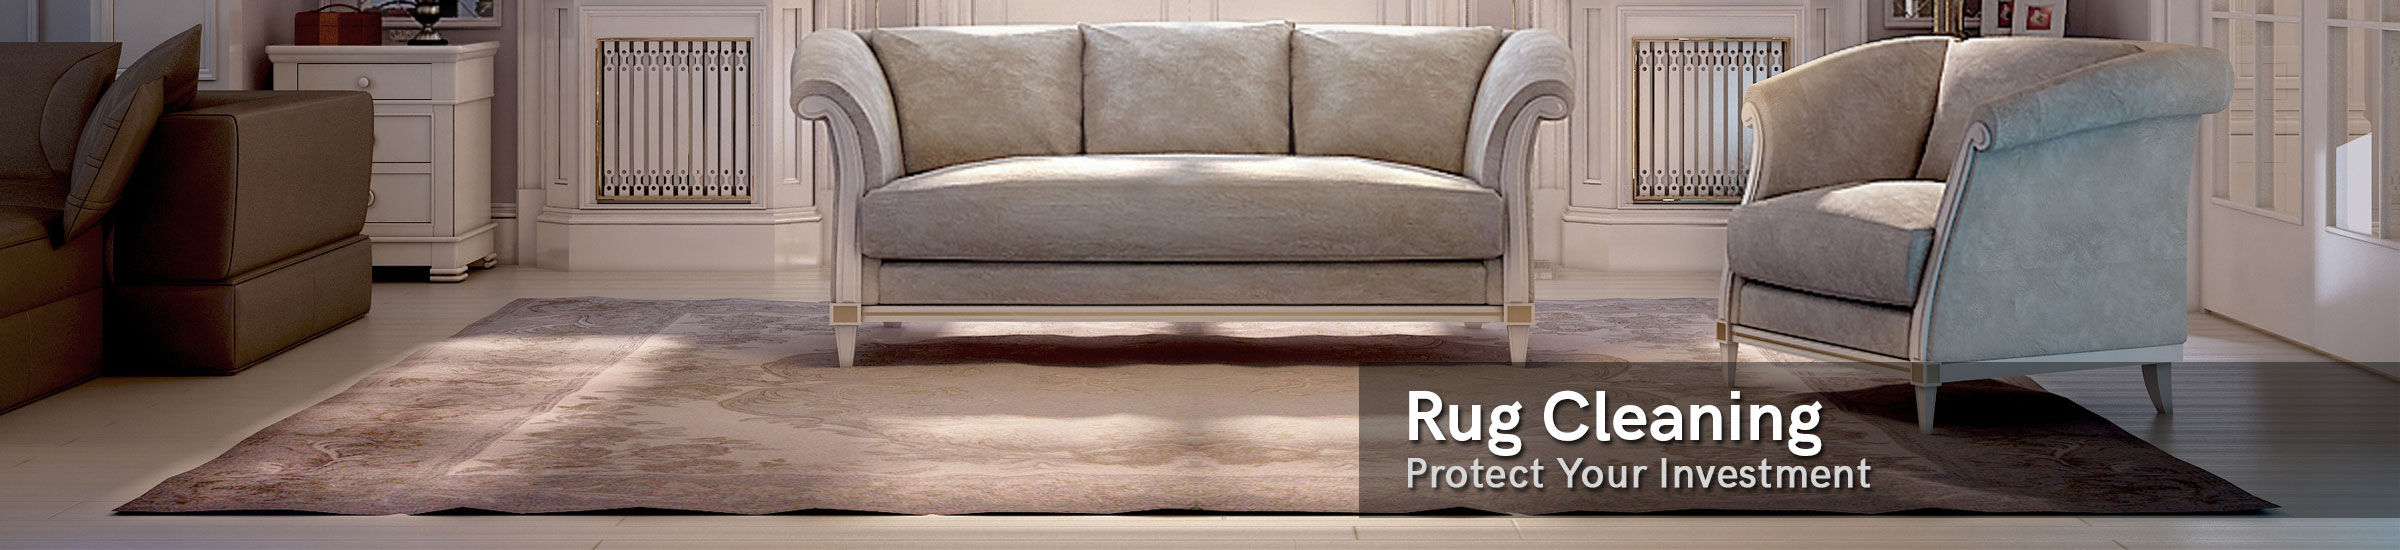 rug-protect-investment